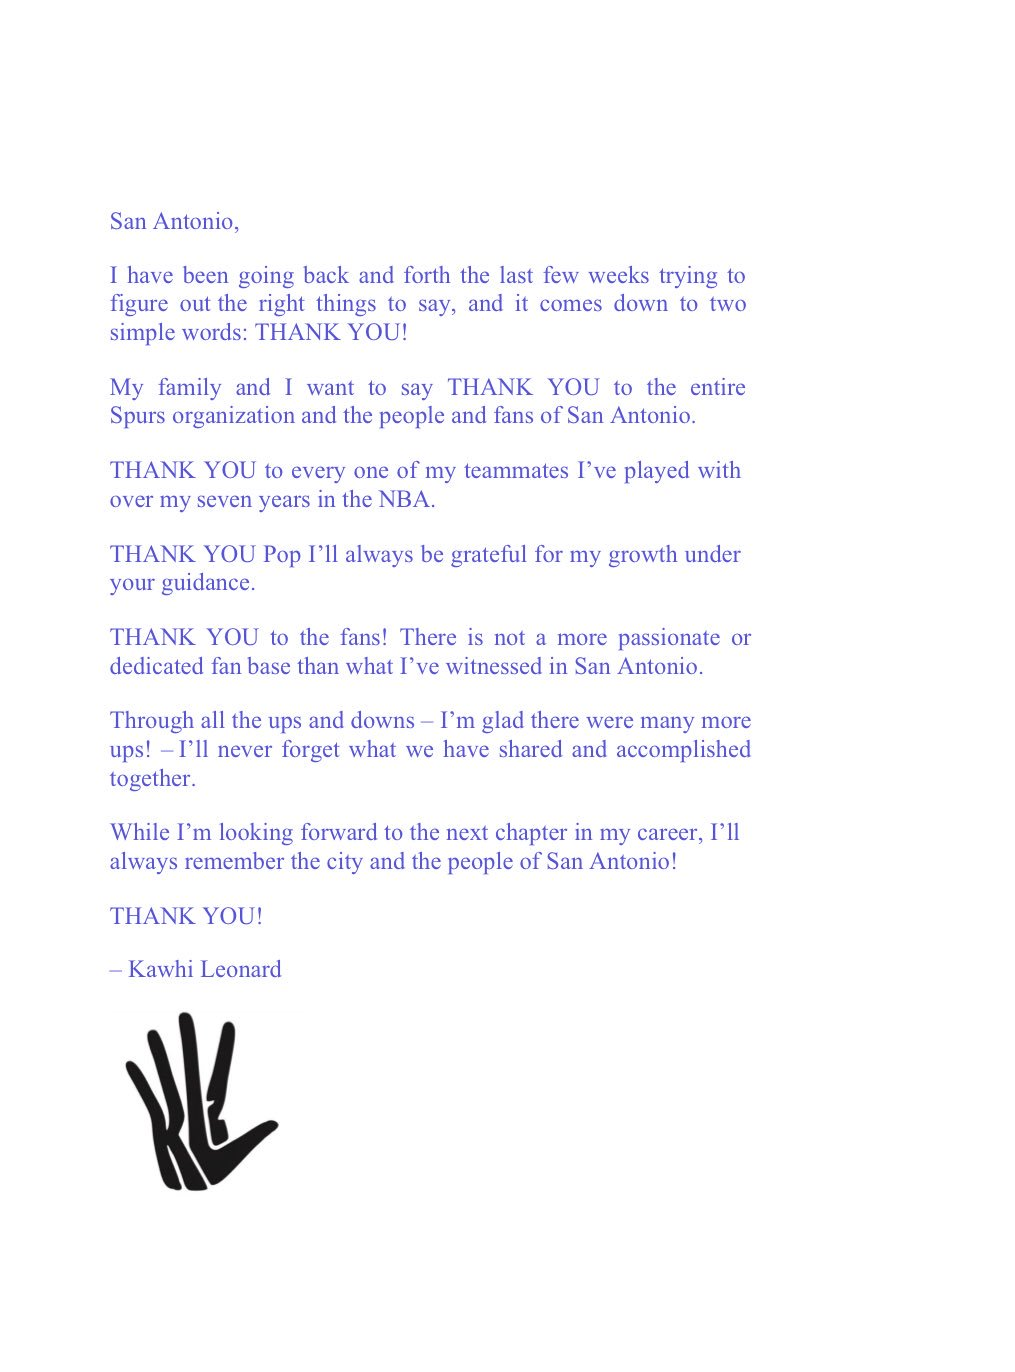 "Jabari Young On Twitter ""Kawhi's Full Thank You Letter To"